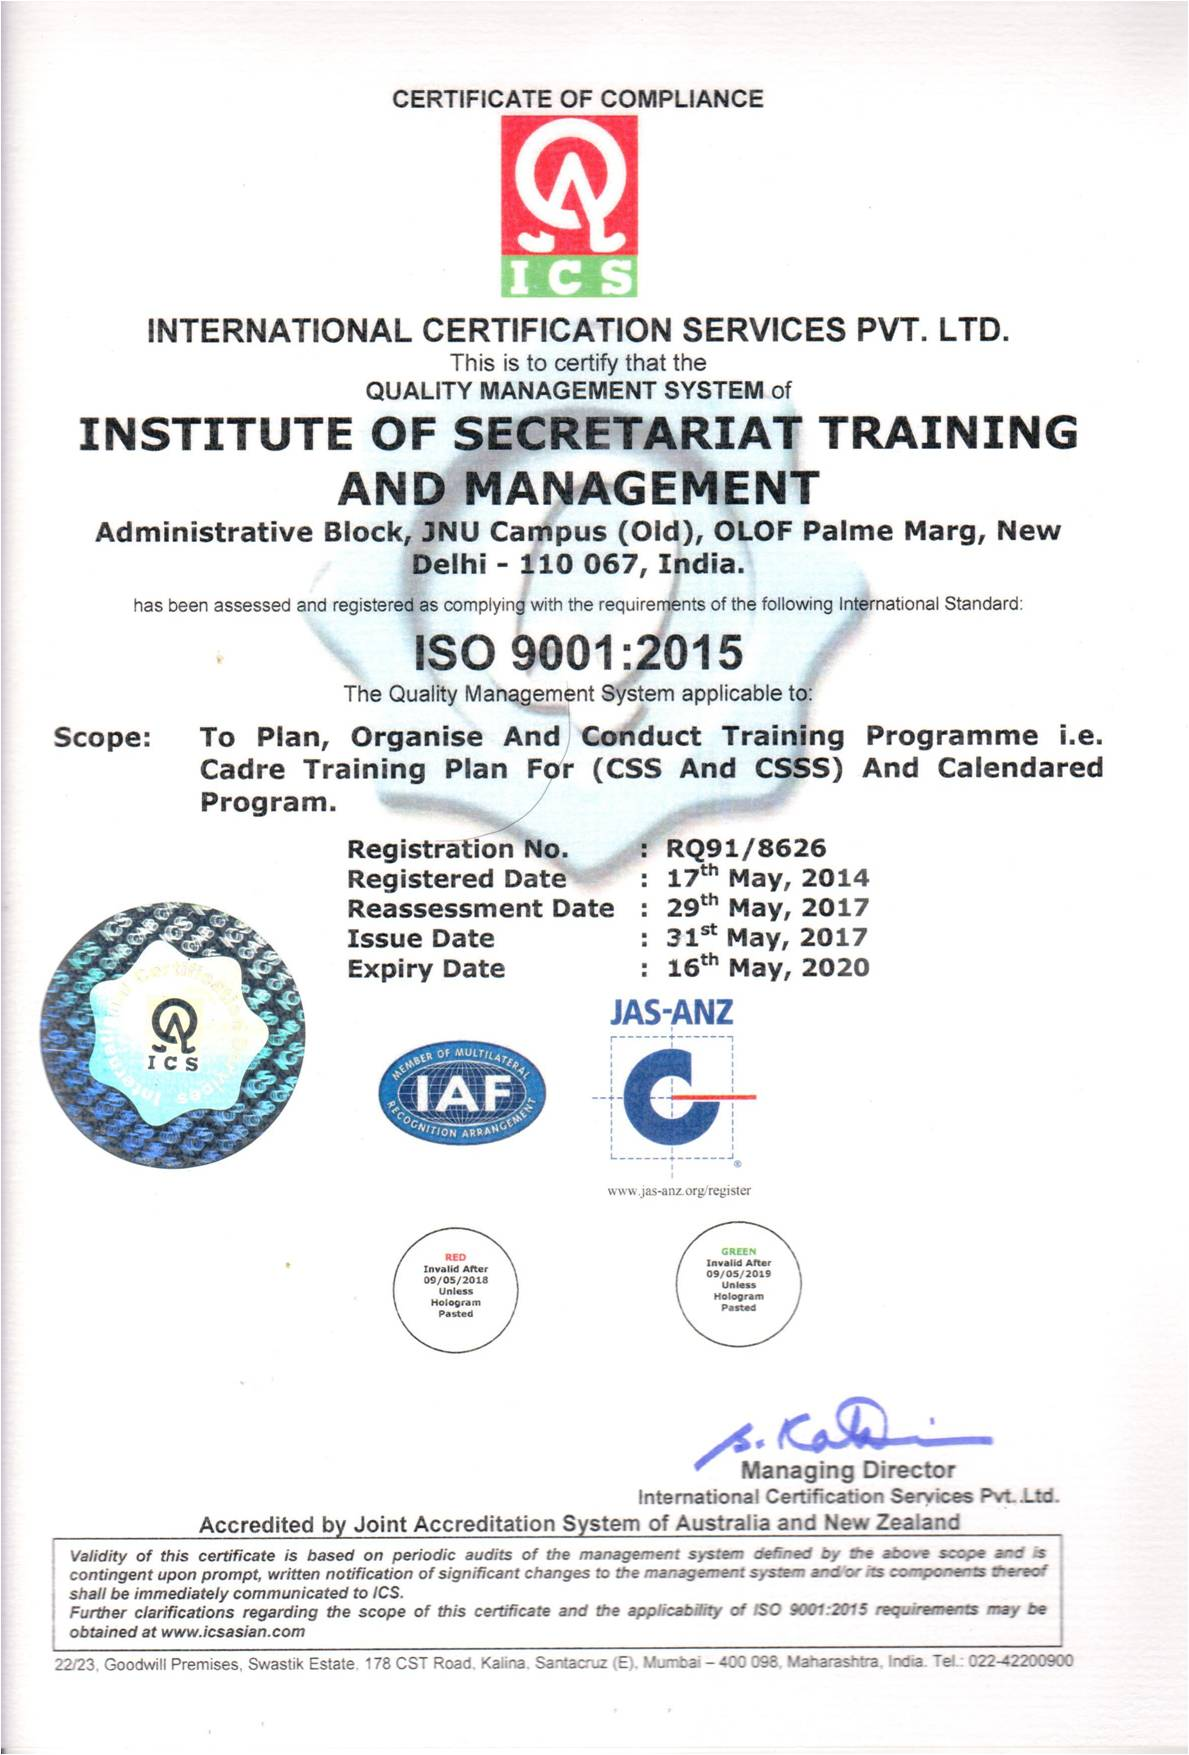 Institute of secretariat training management govt of india to see the iso 90012015 certificate of istm please click the image below xflitez Images